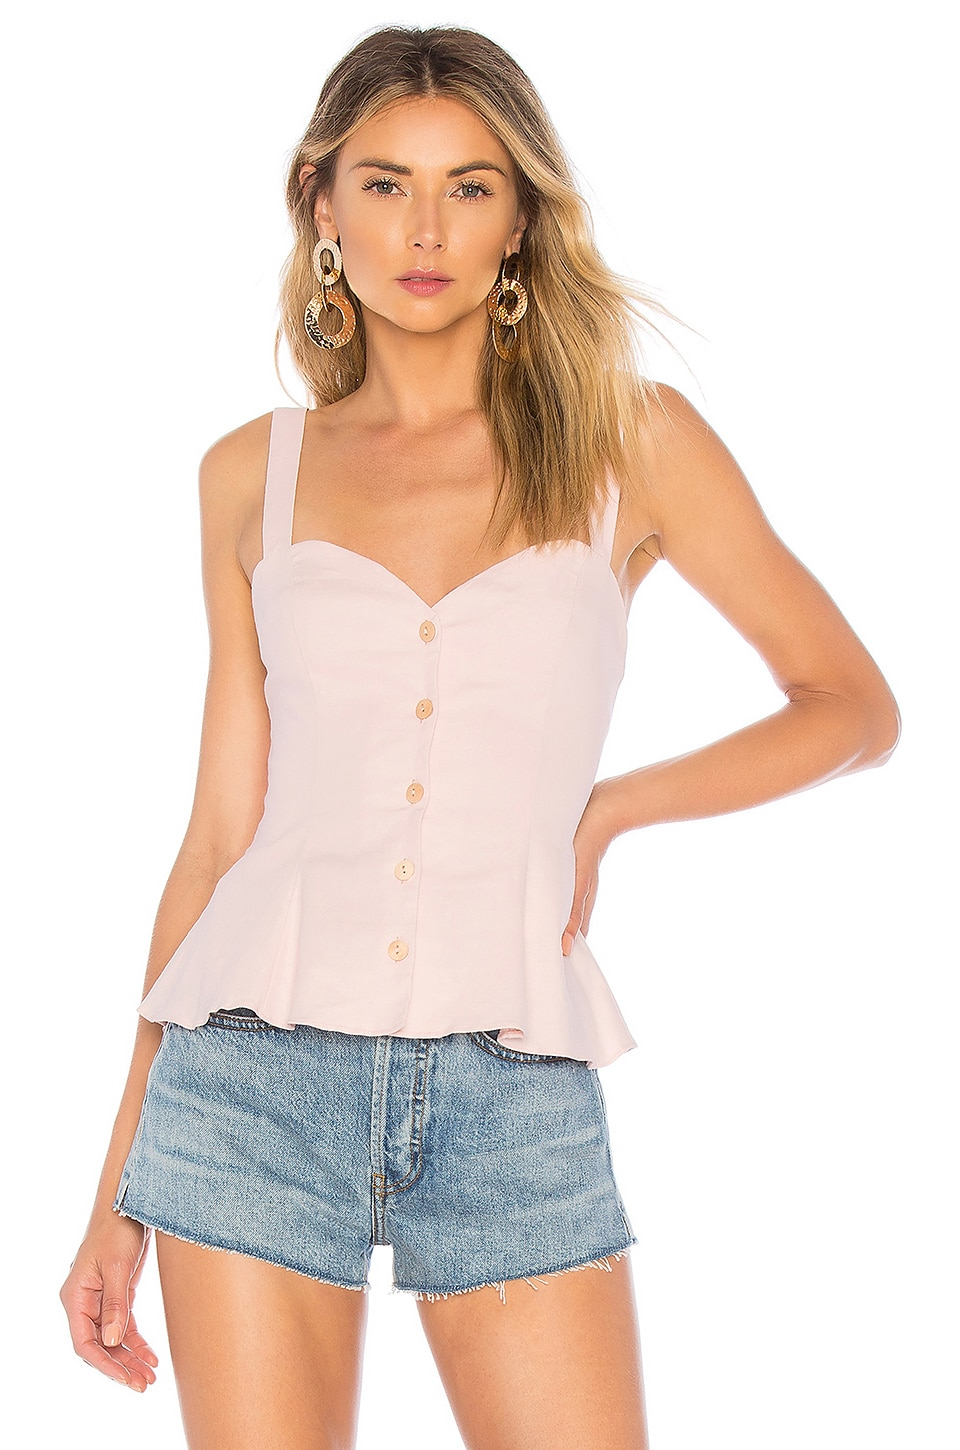 L'Academie The Brasilia Top in Light Pink